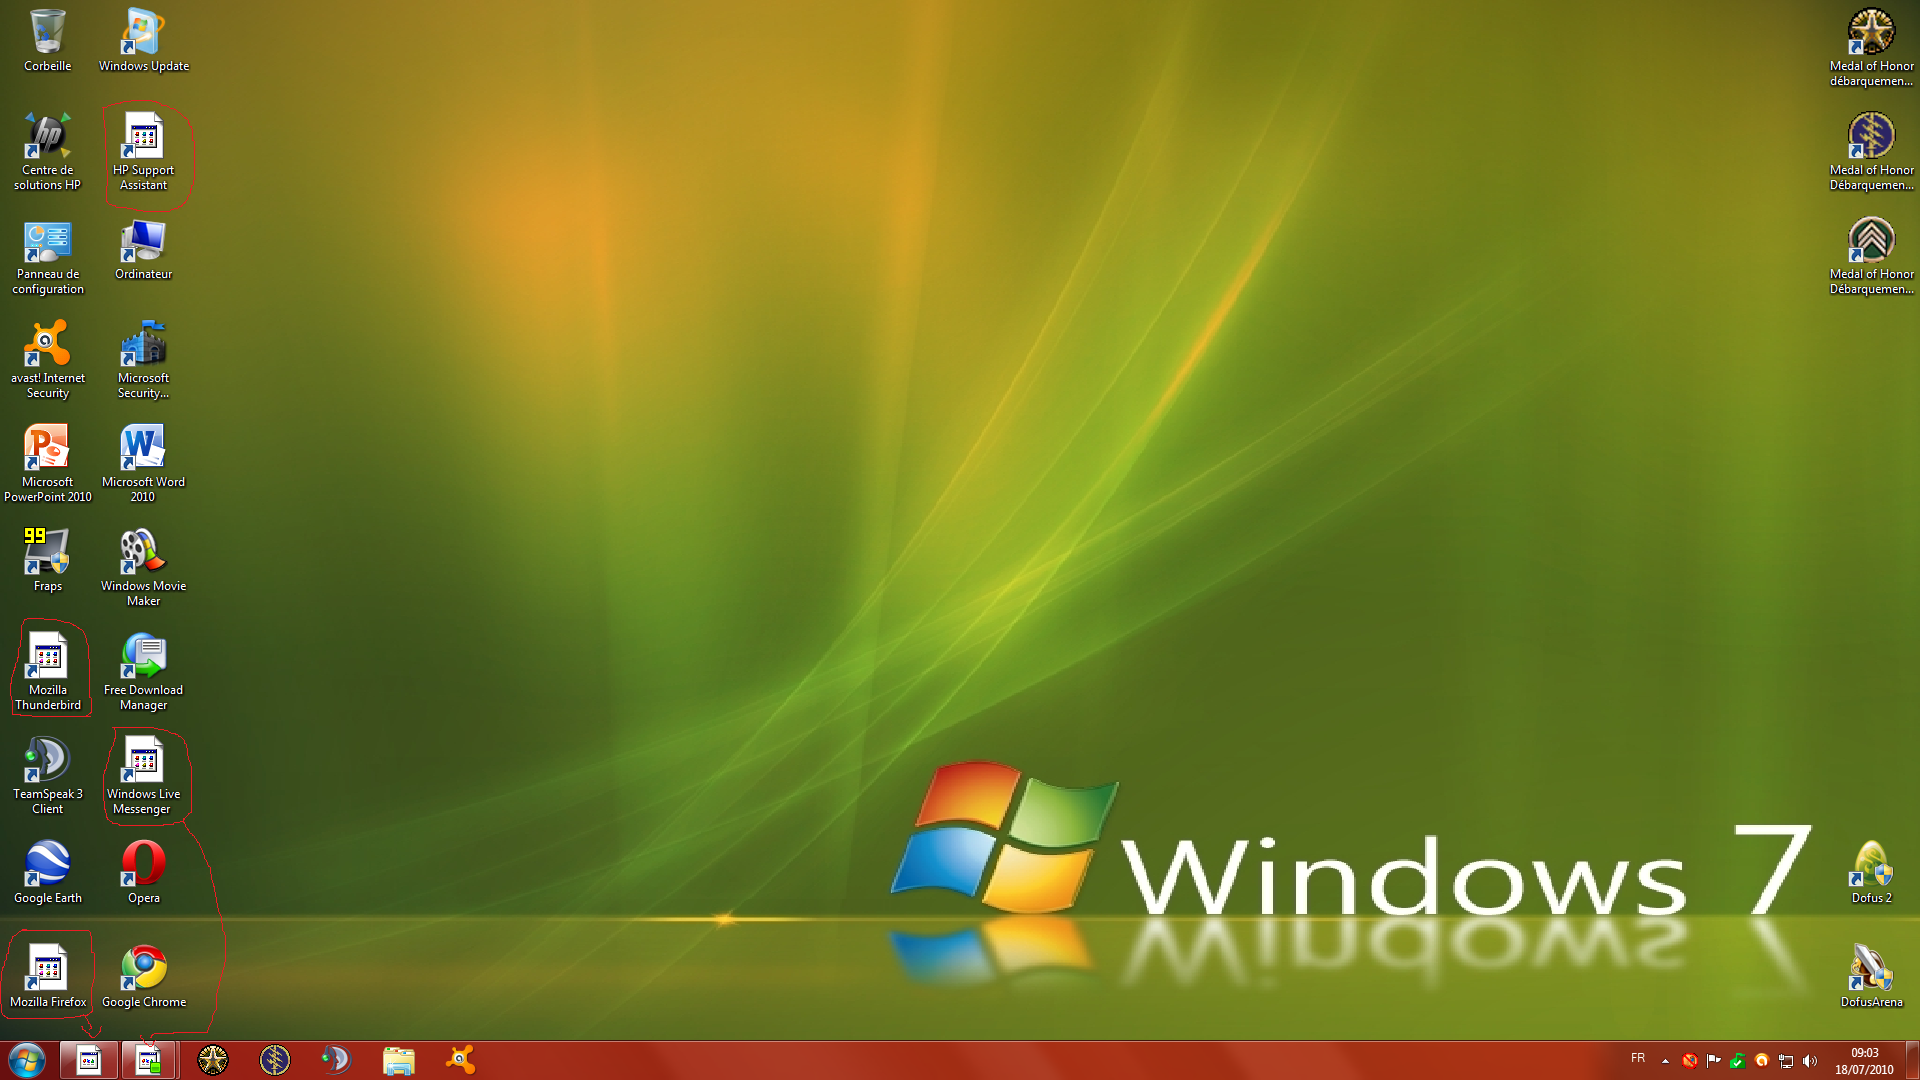 Windows 7 icone sur le bureau r solu windows 7 - Icone bureau disparu windows 7 ...